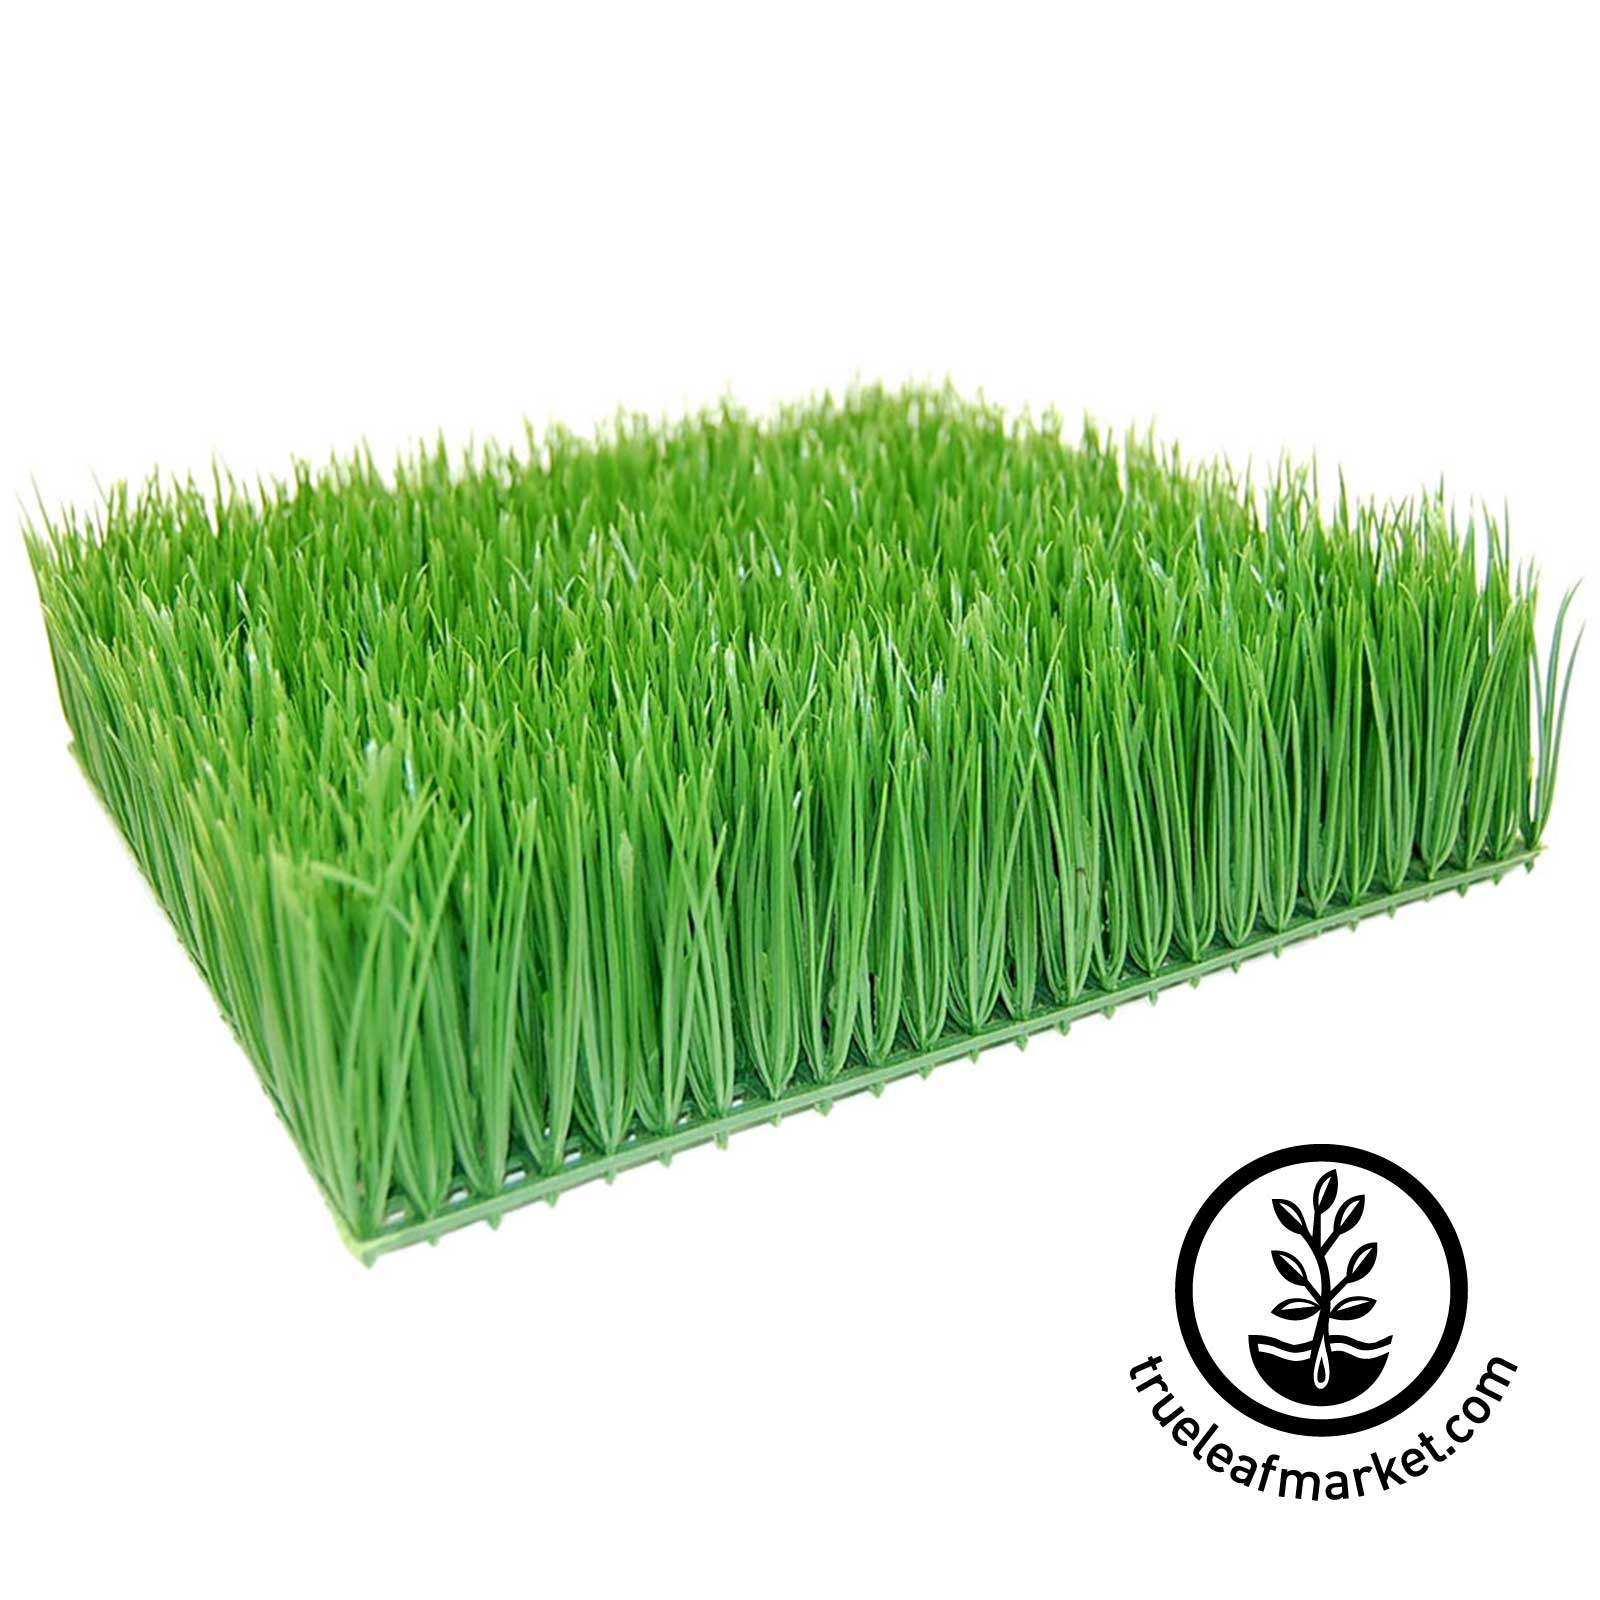 Artificial Wheatgrass 12 inch by 12 inch by 4 inches high